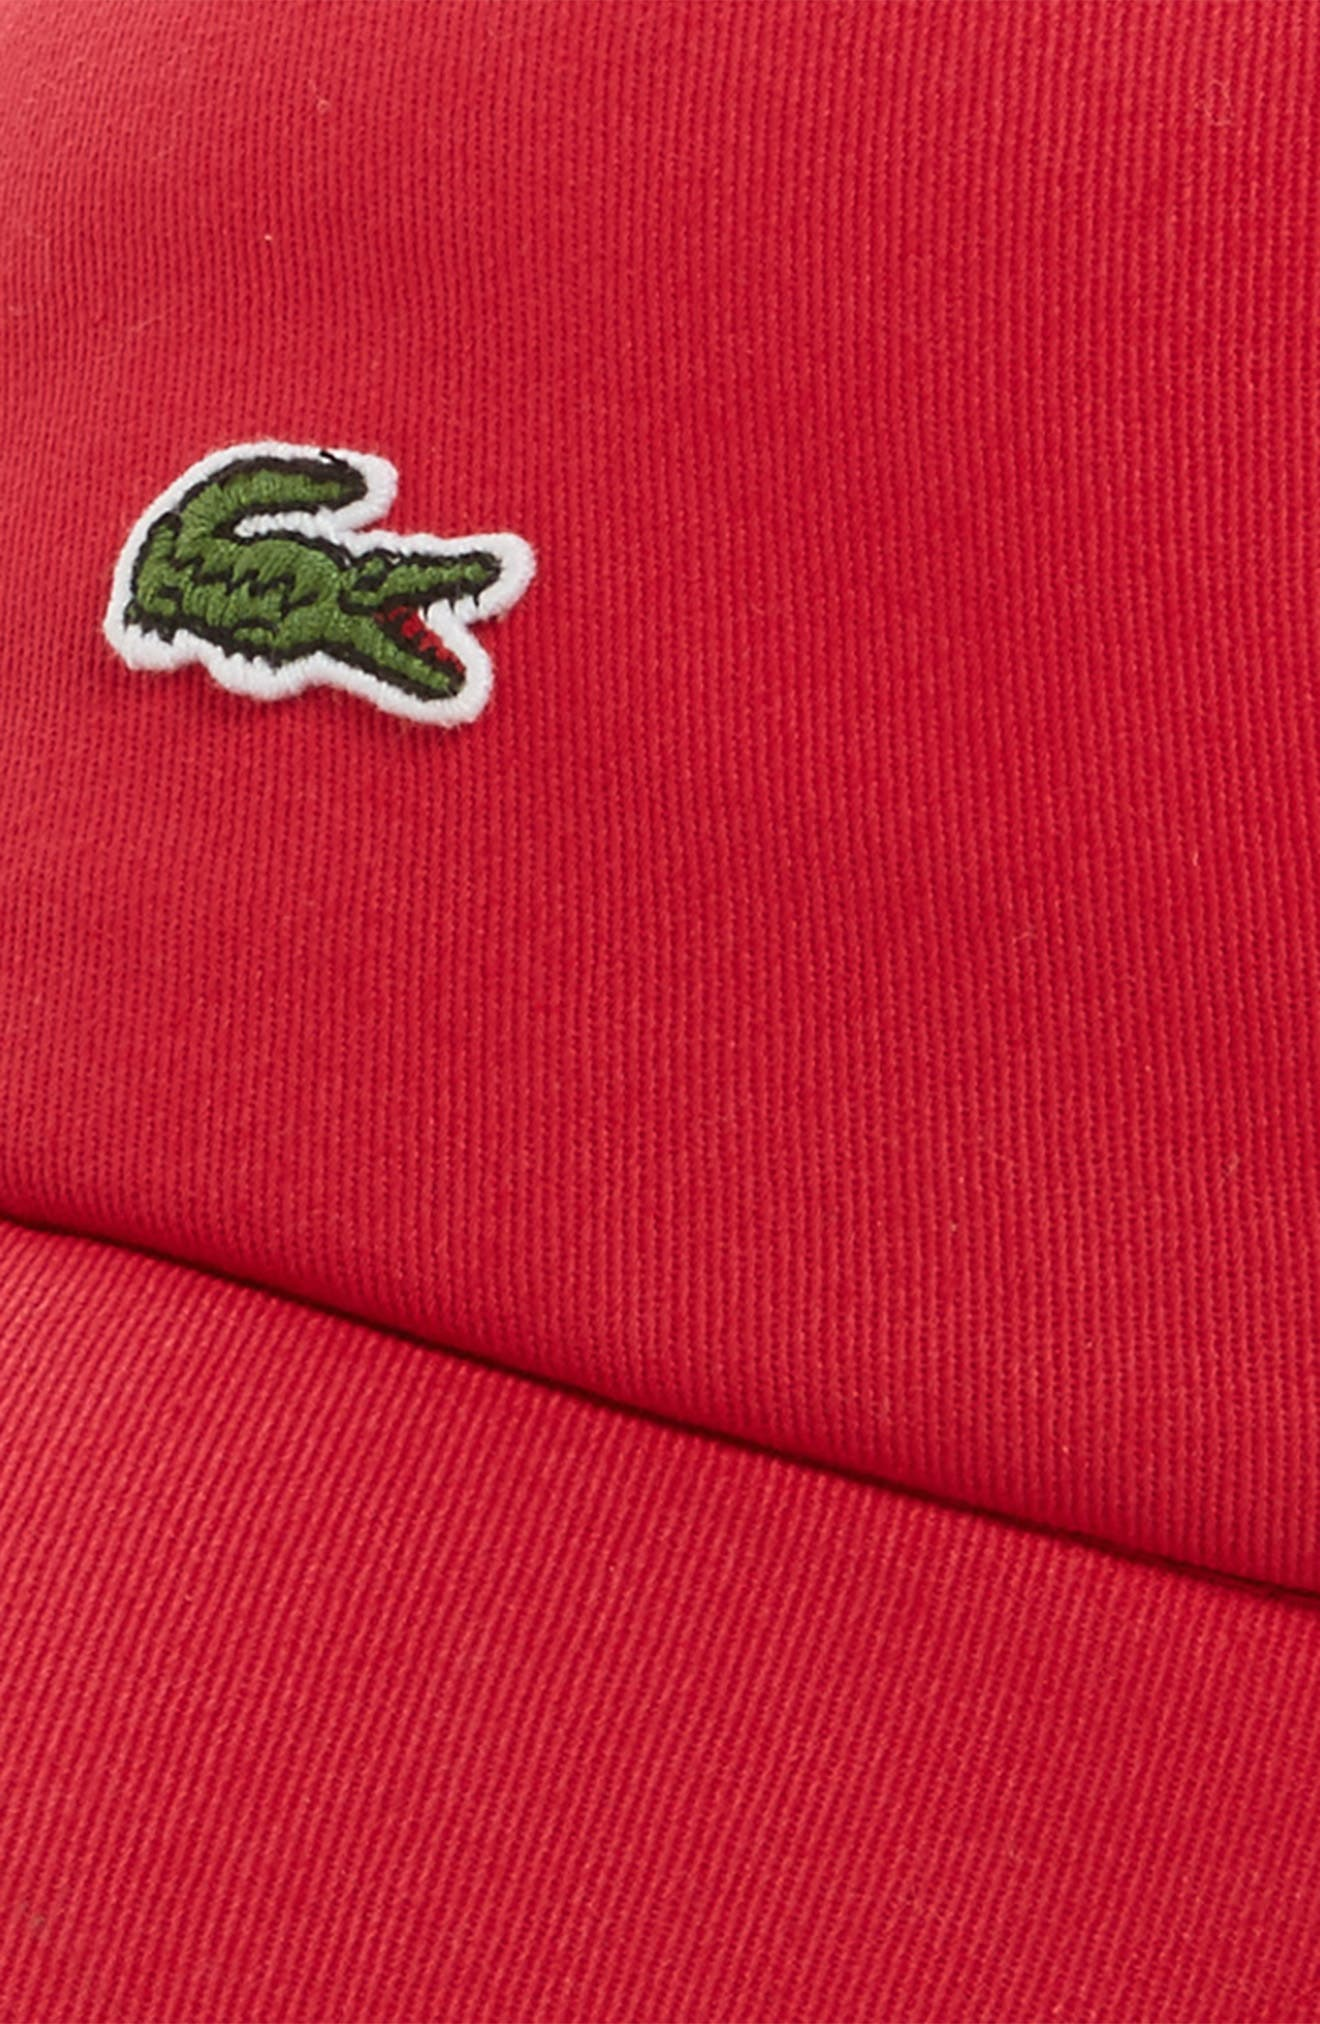 Small Croc Baseball Cap,                             Alternate thumbnail 18, color,